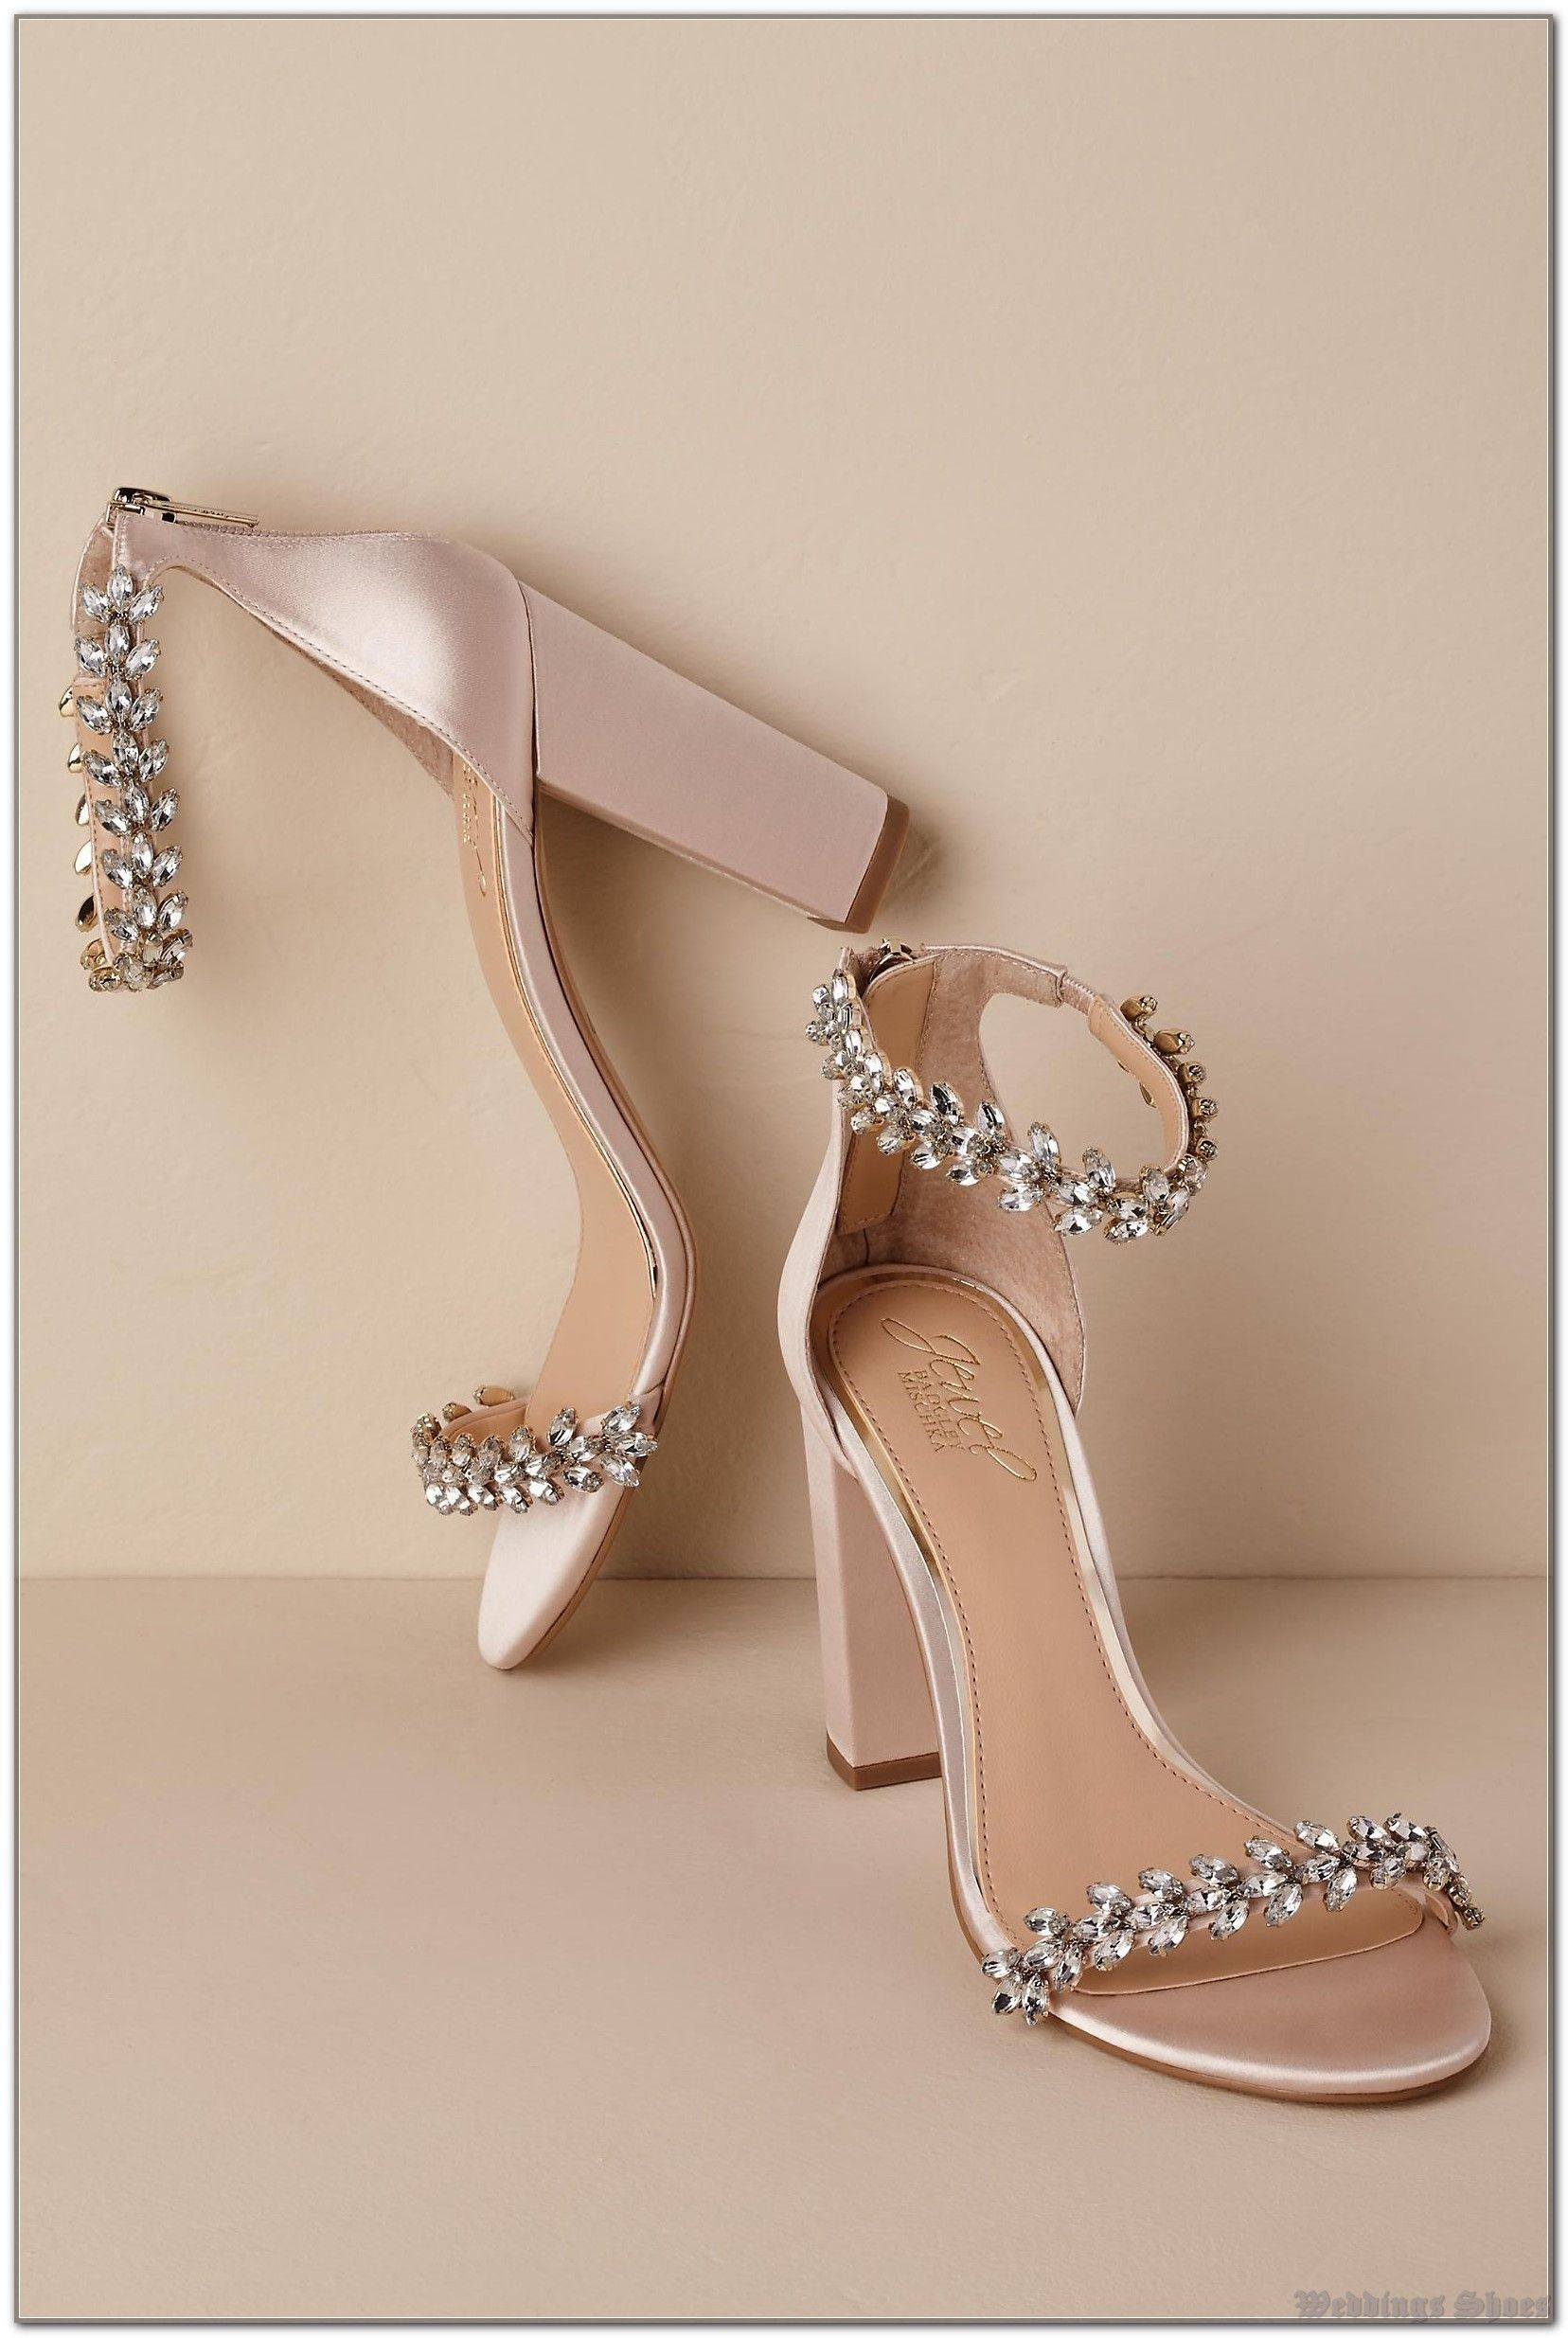 Wedding Shoes Shortcuts – The Easy Way